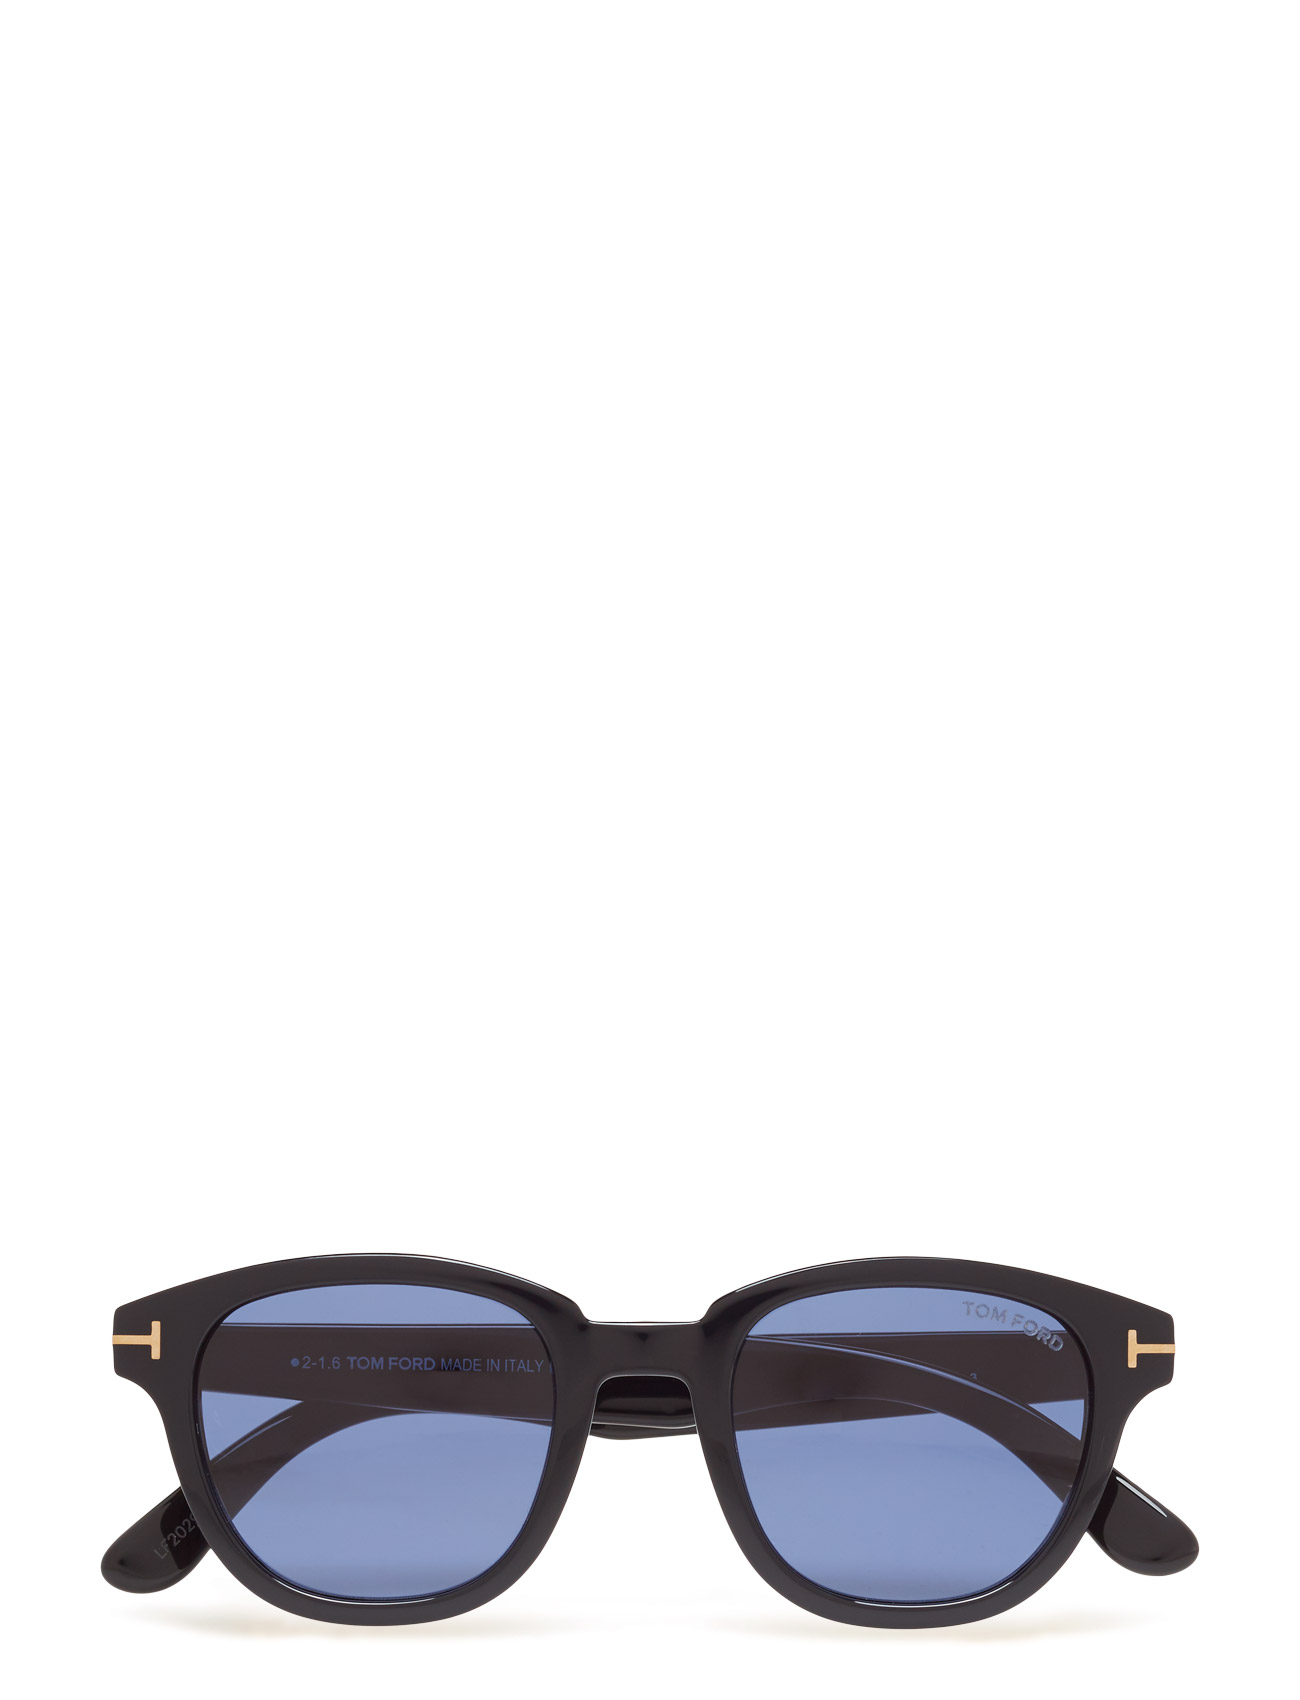 Tom Ford Garett Tom Ford Sunglasses Solbriller til Herrer i